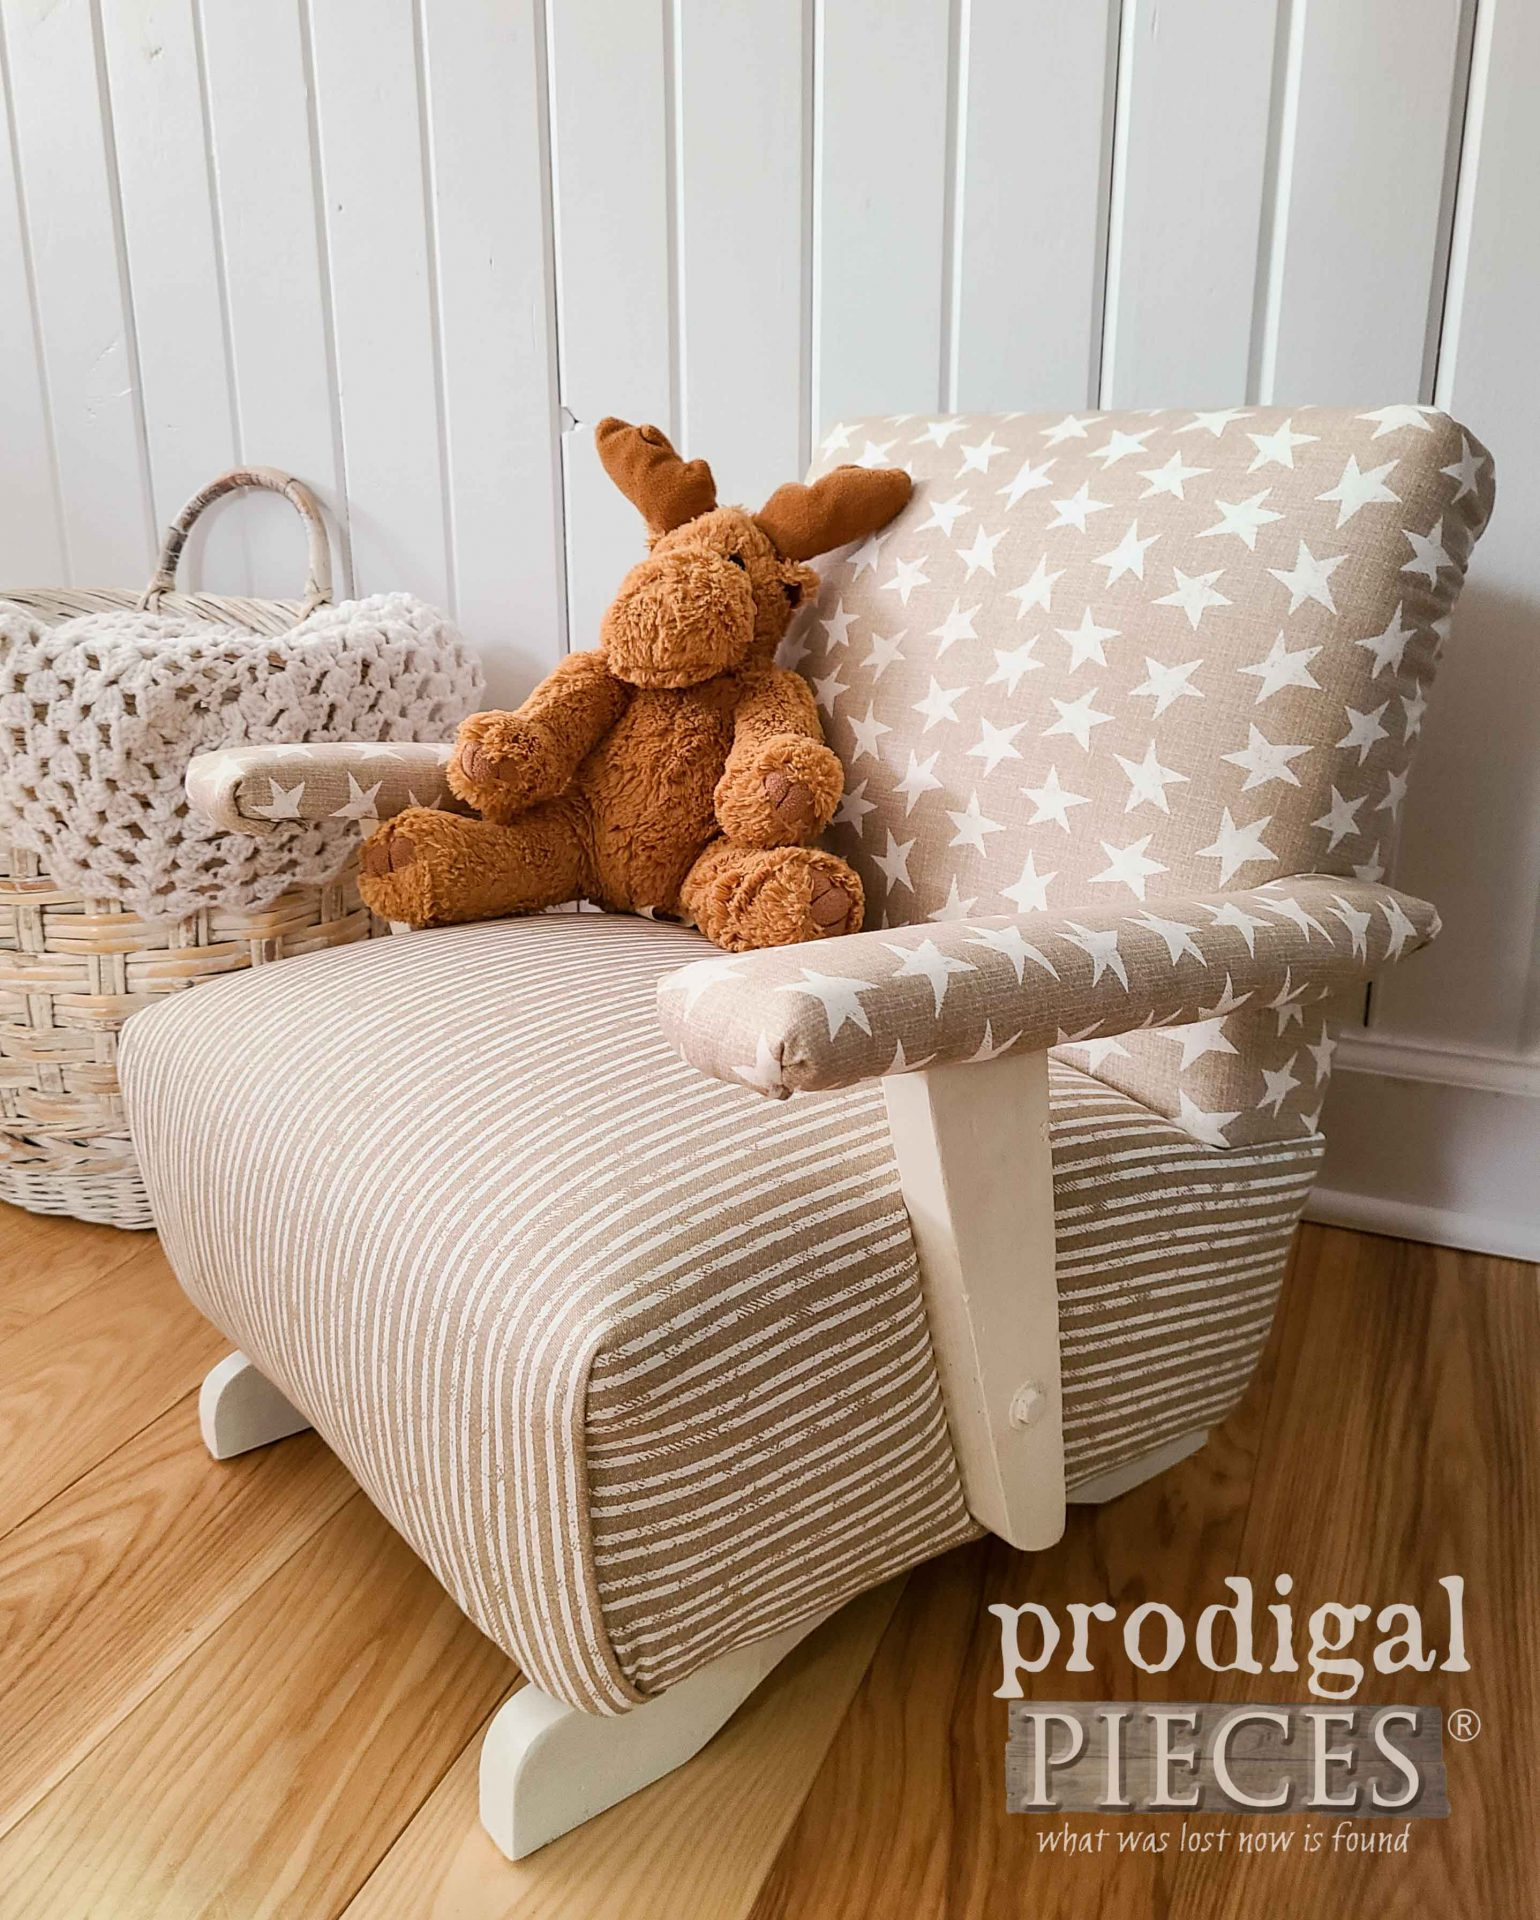 Vintage Kids Rocking Chair with Modern Farmhouse Style by Larissa of Prodigal Pieces | prodigalpieces.com #prodigalpieces #diy #furniture #home #homedecor